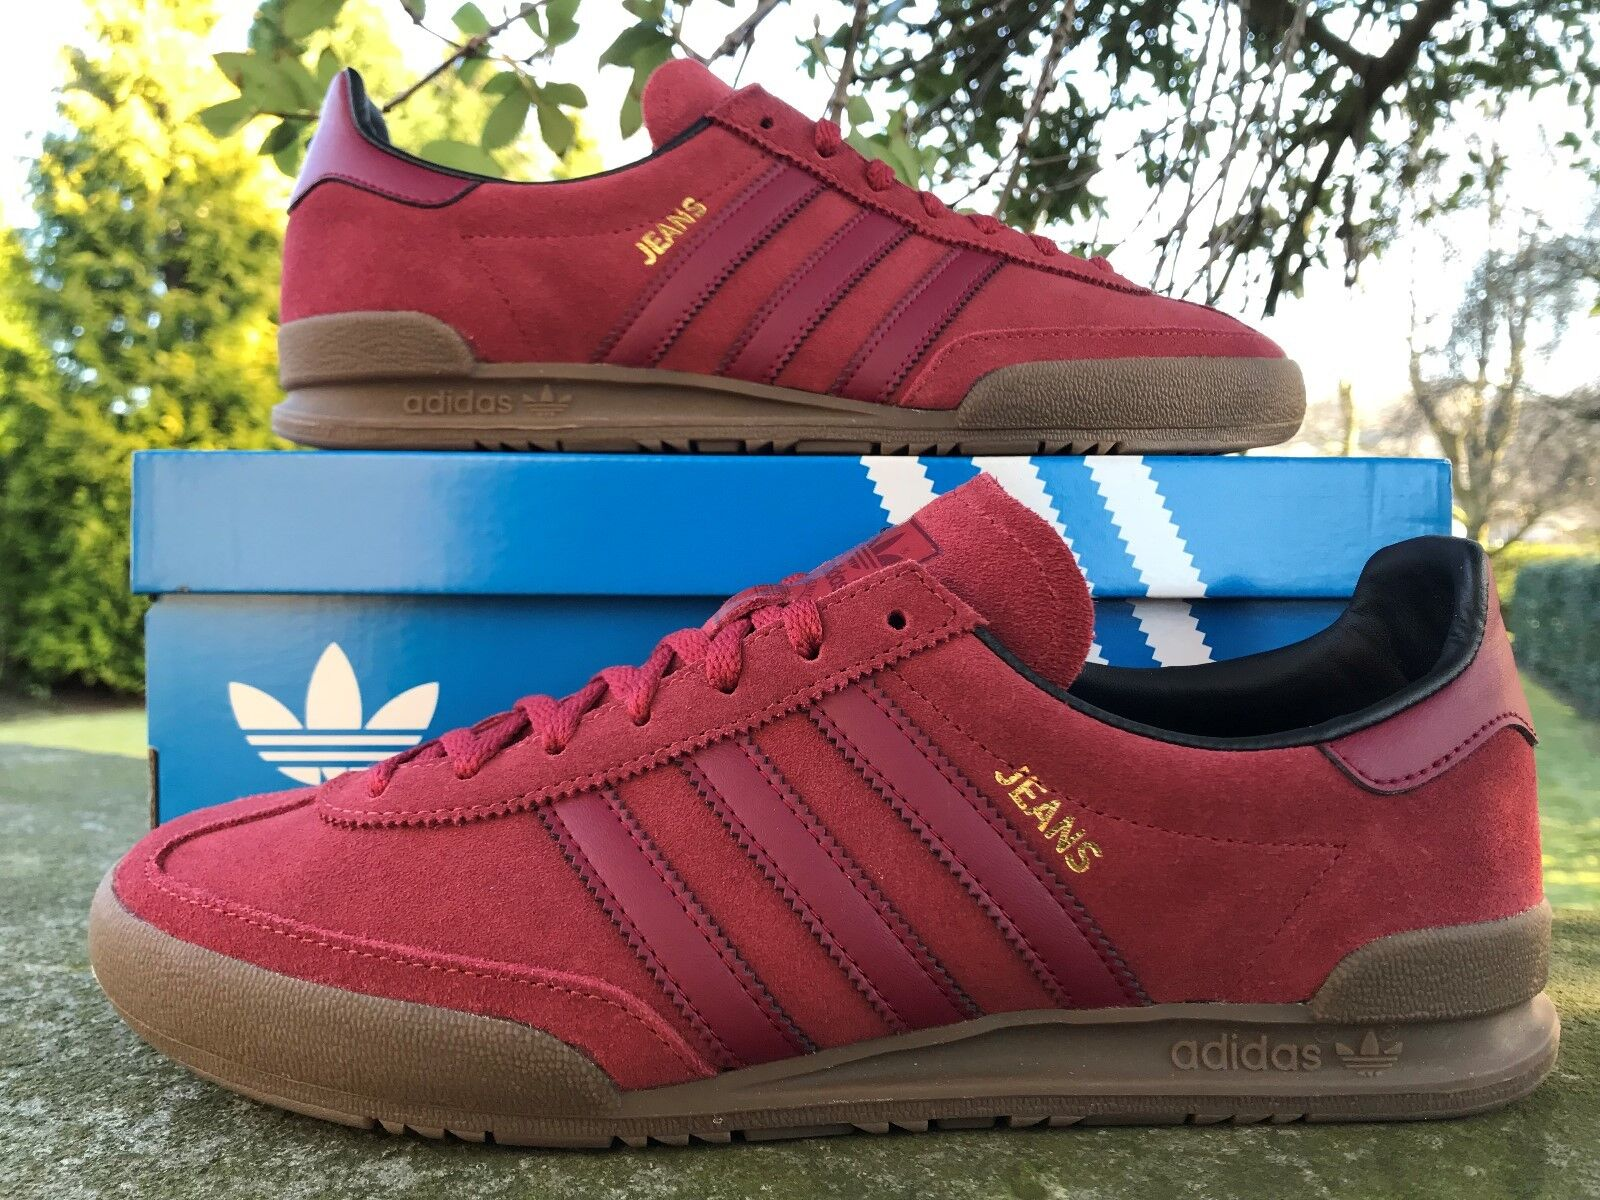 big sale e3867 c486b Adidas Originals Jeans Fashion Trainers Red Sizes US 12 BNIBWT Mens  nskfso2517-Athletic Shoes